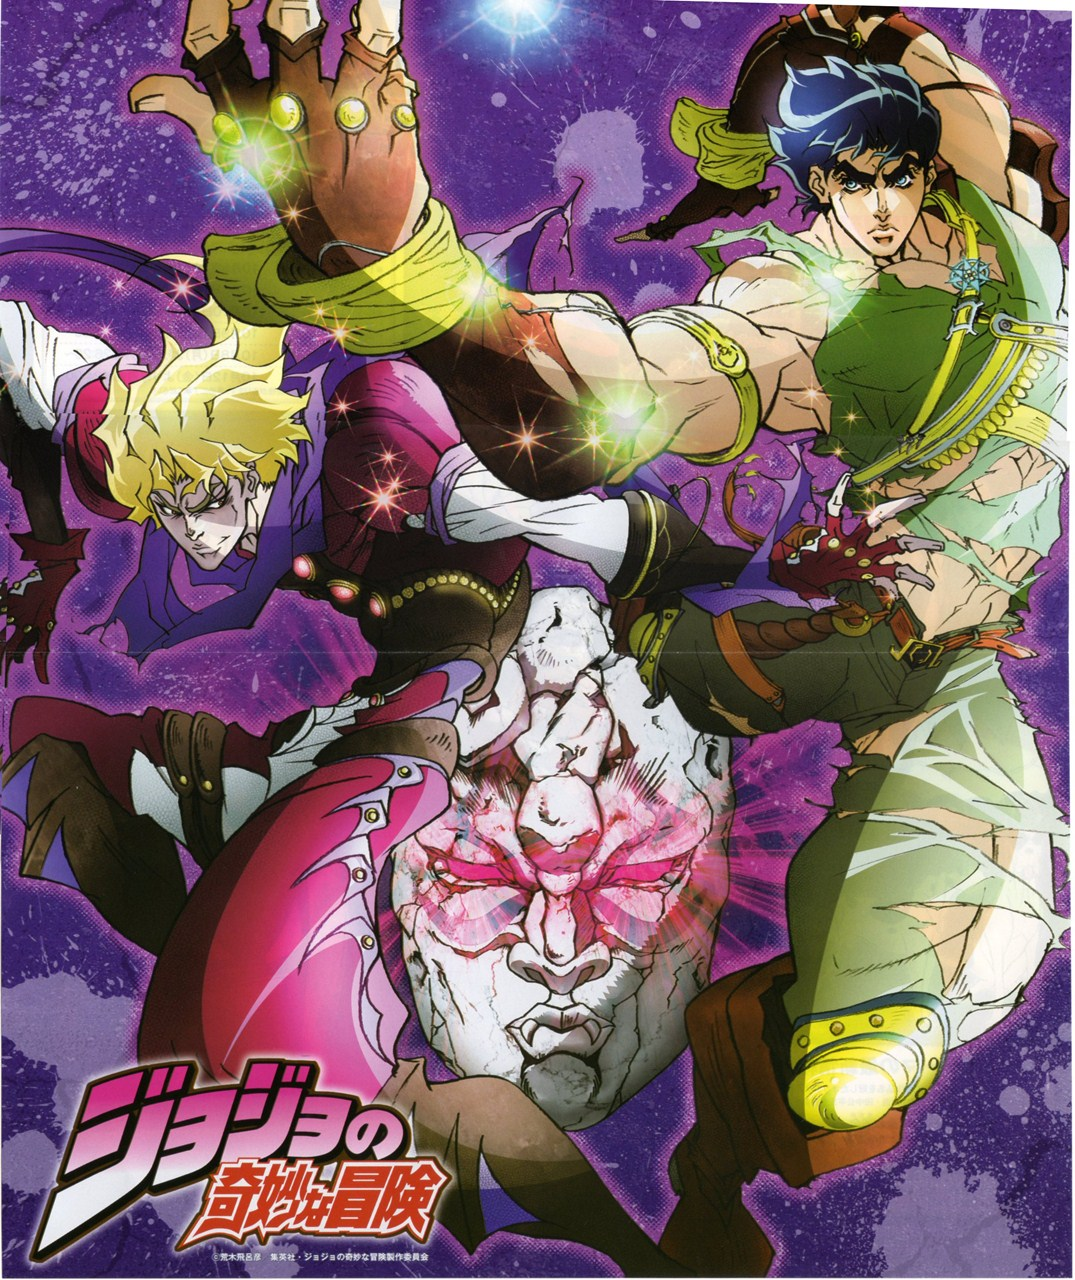 2. JoJo's Bizarre Adventure Part 4